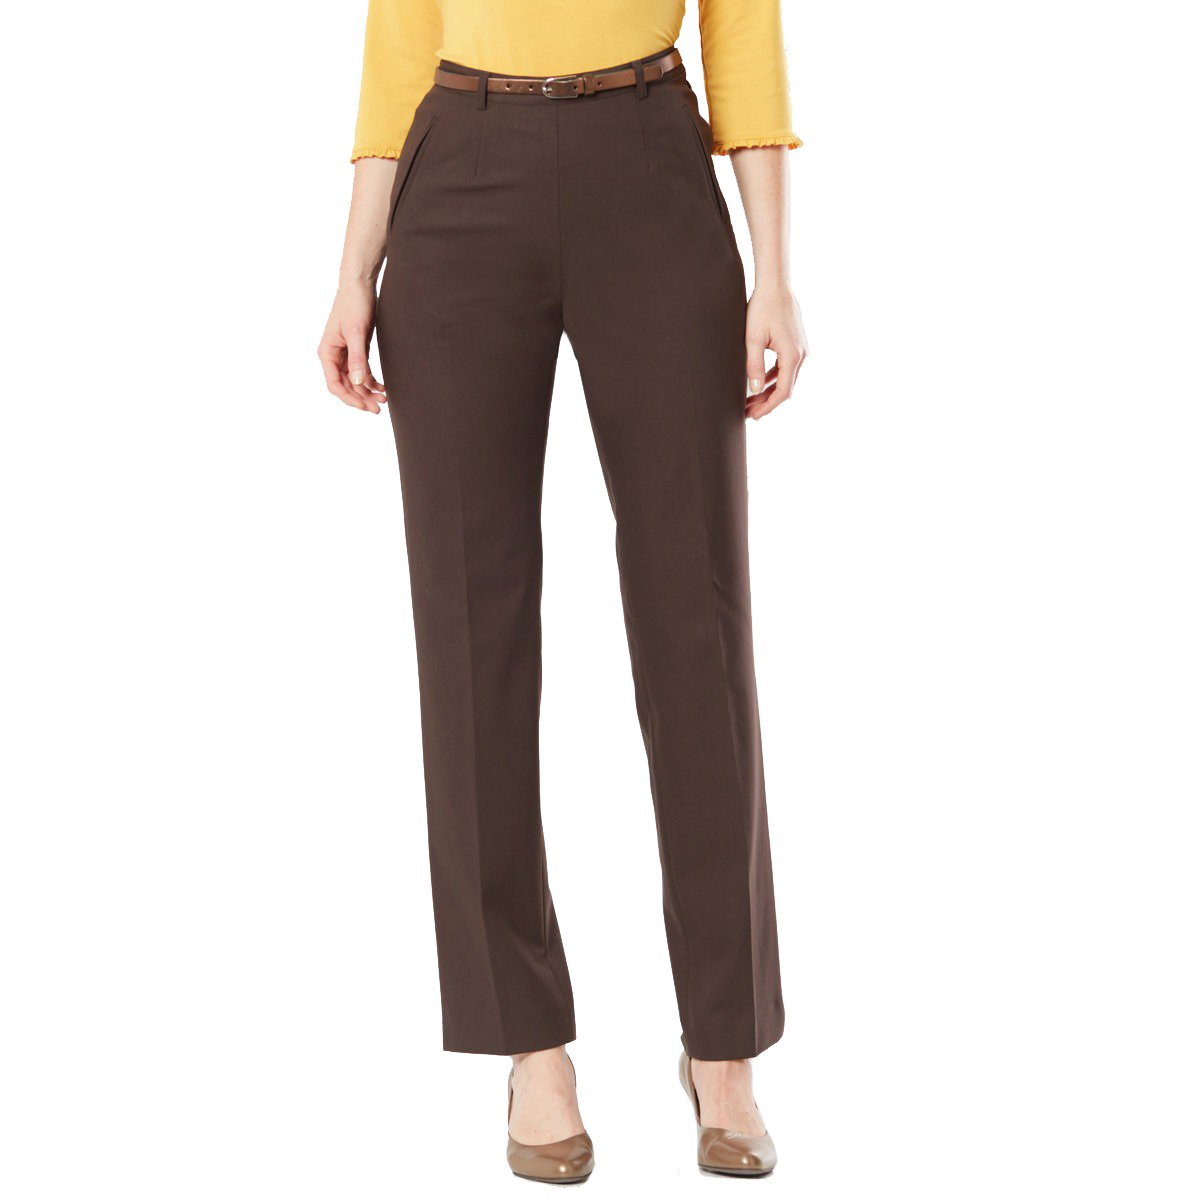 La Redoute Womens Straight Trousers Brown Size Us 8 - Fr 38